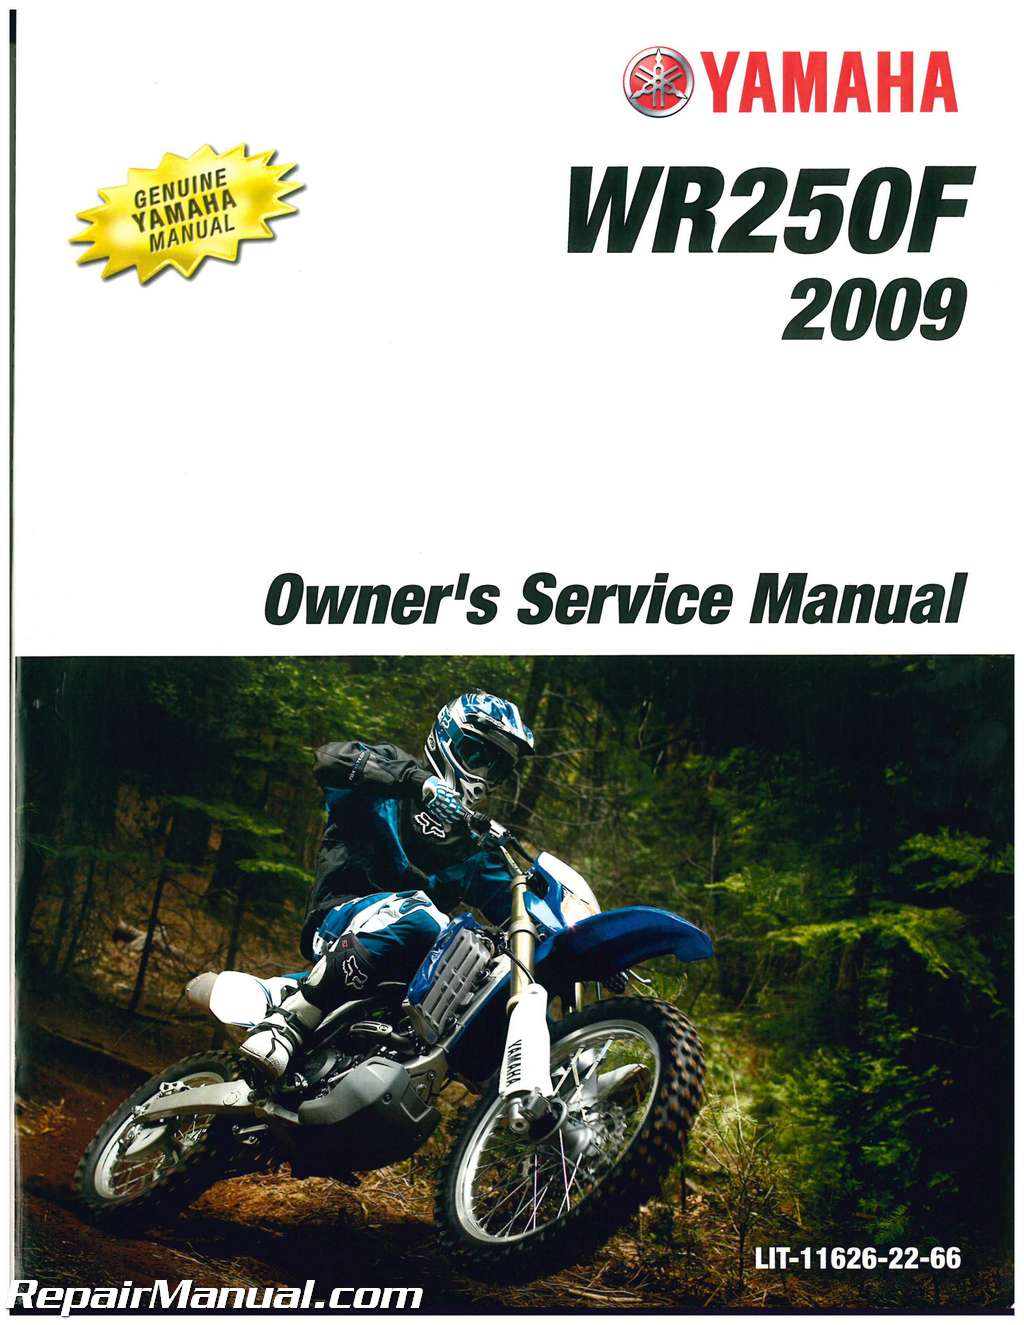 Calaméo 2005 yamaha wr250f(t) service repair manual download.